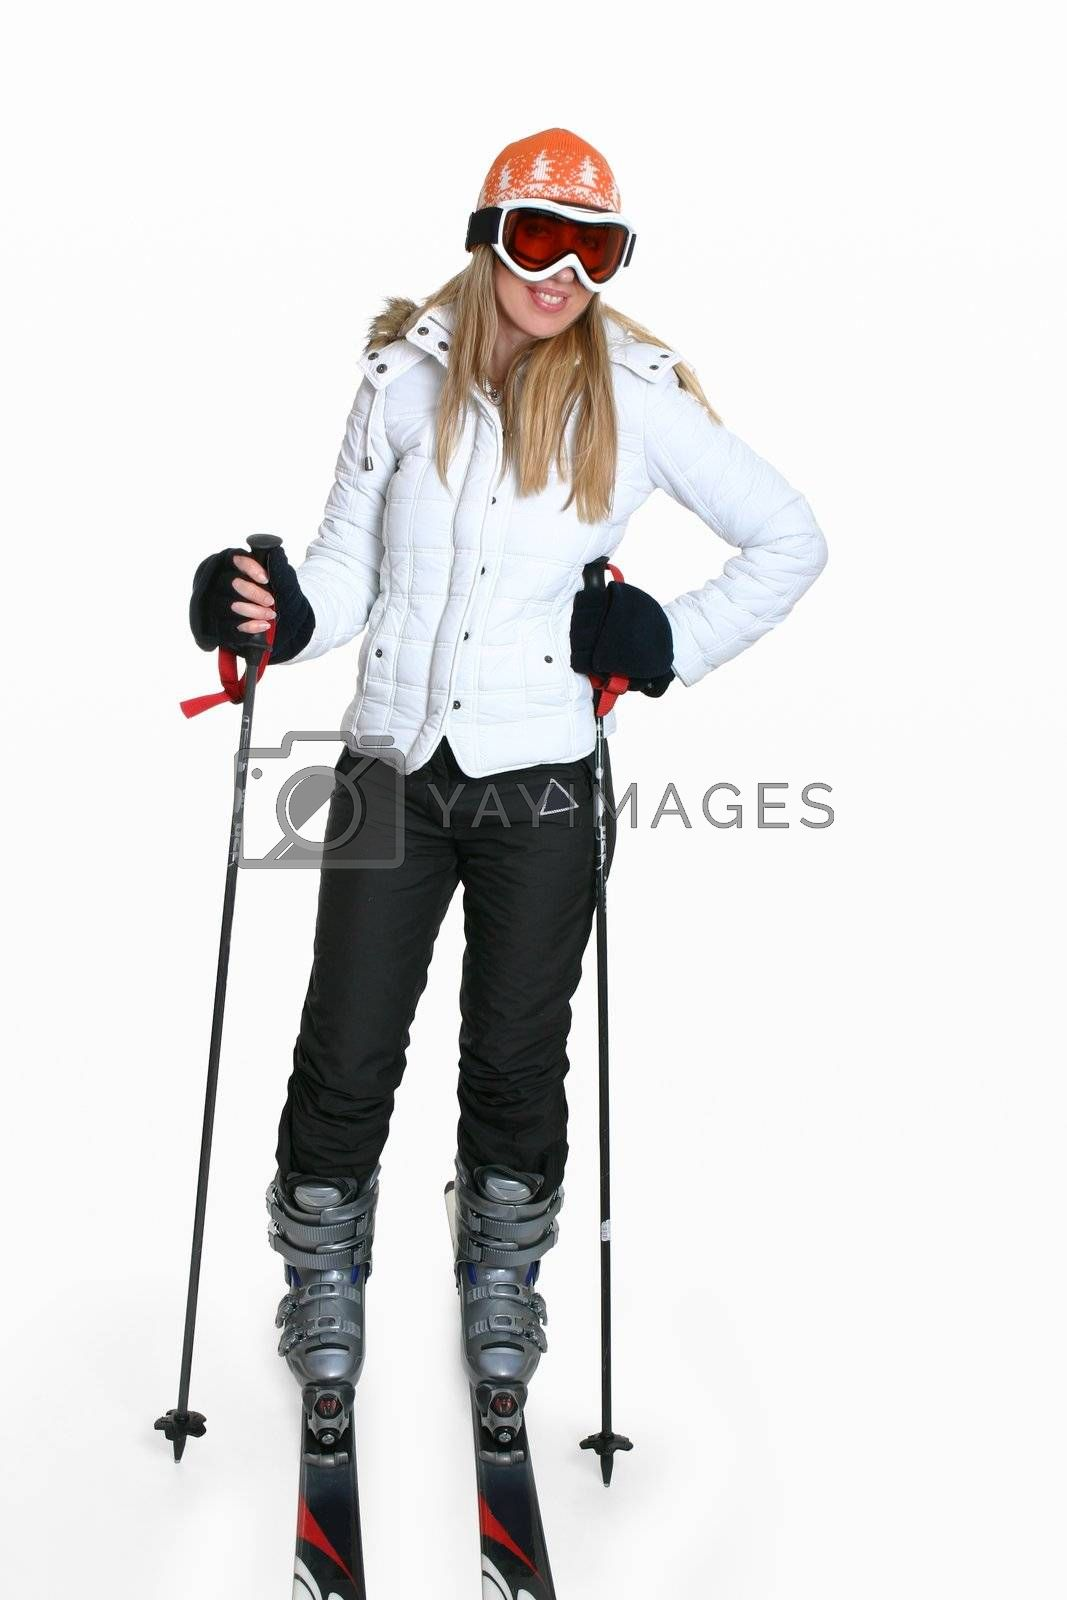 Female wearing ski gear by lovleah